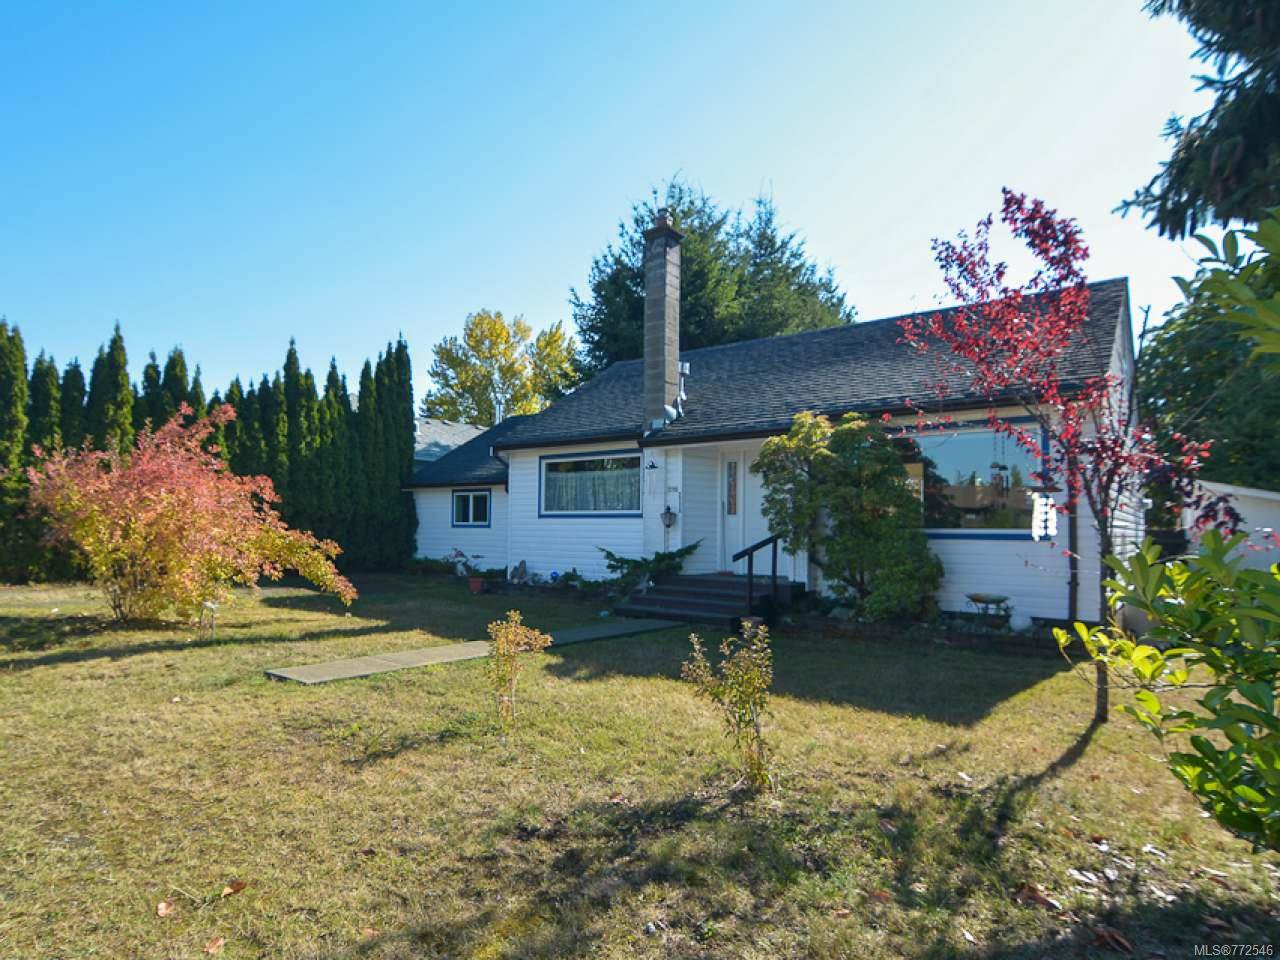 Main Photo: 2775 ULVERSTON Avenue in CUMBERLAND: CV Cumberland House for sale (Comox Valley)  : MLS®# 772546